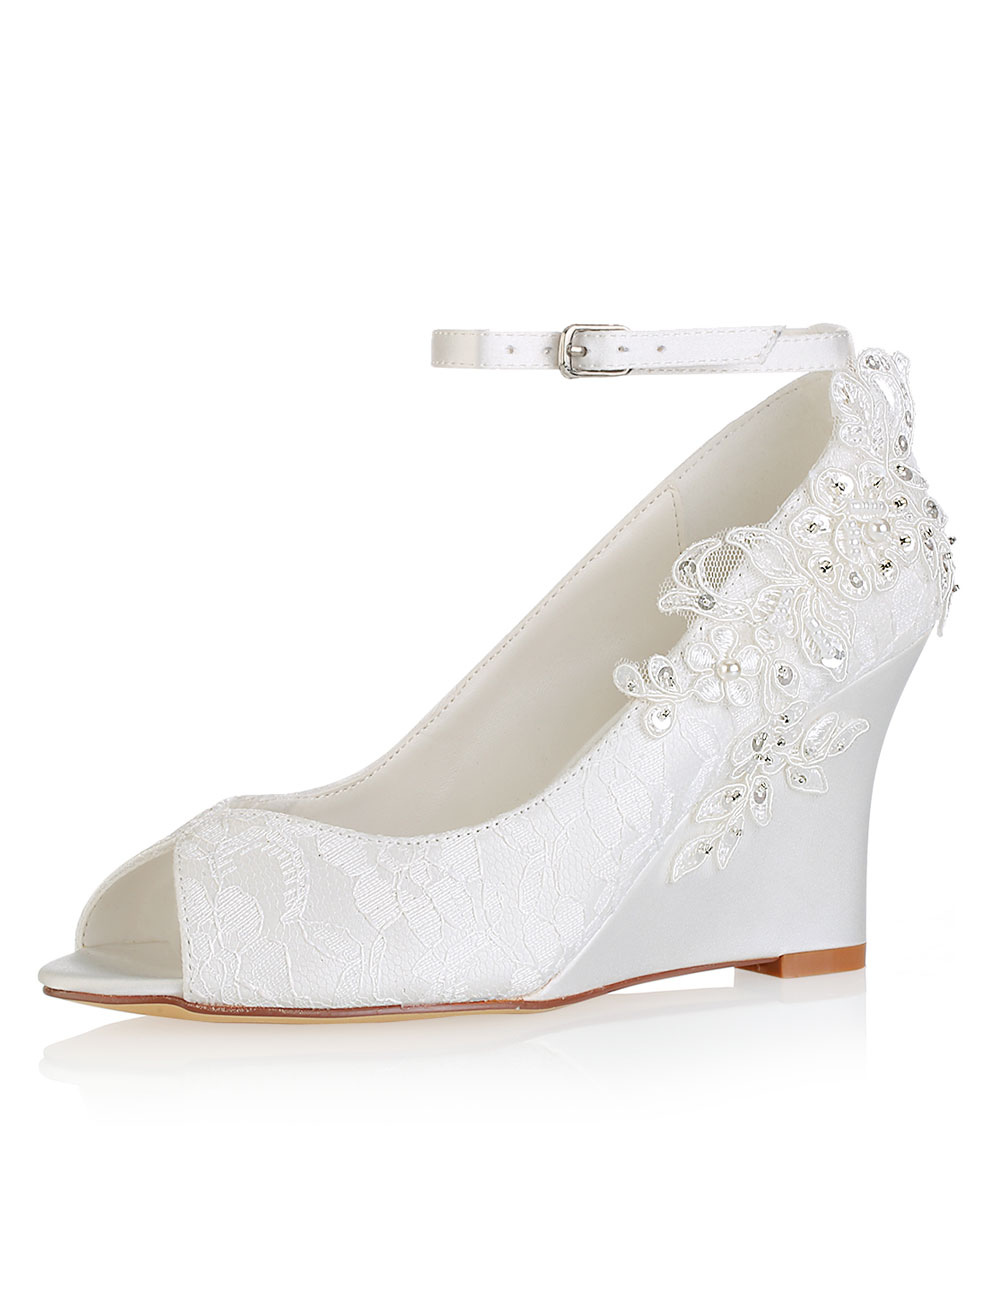 Buy Lace Wedding Shoes Ivory Peep Toe Flowers Detail Wedge Shoes Ankle Strap Bridal Shoes for $55.79 in Milanoo store